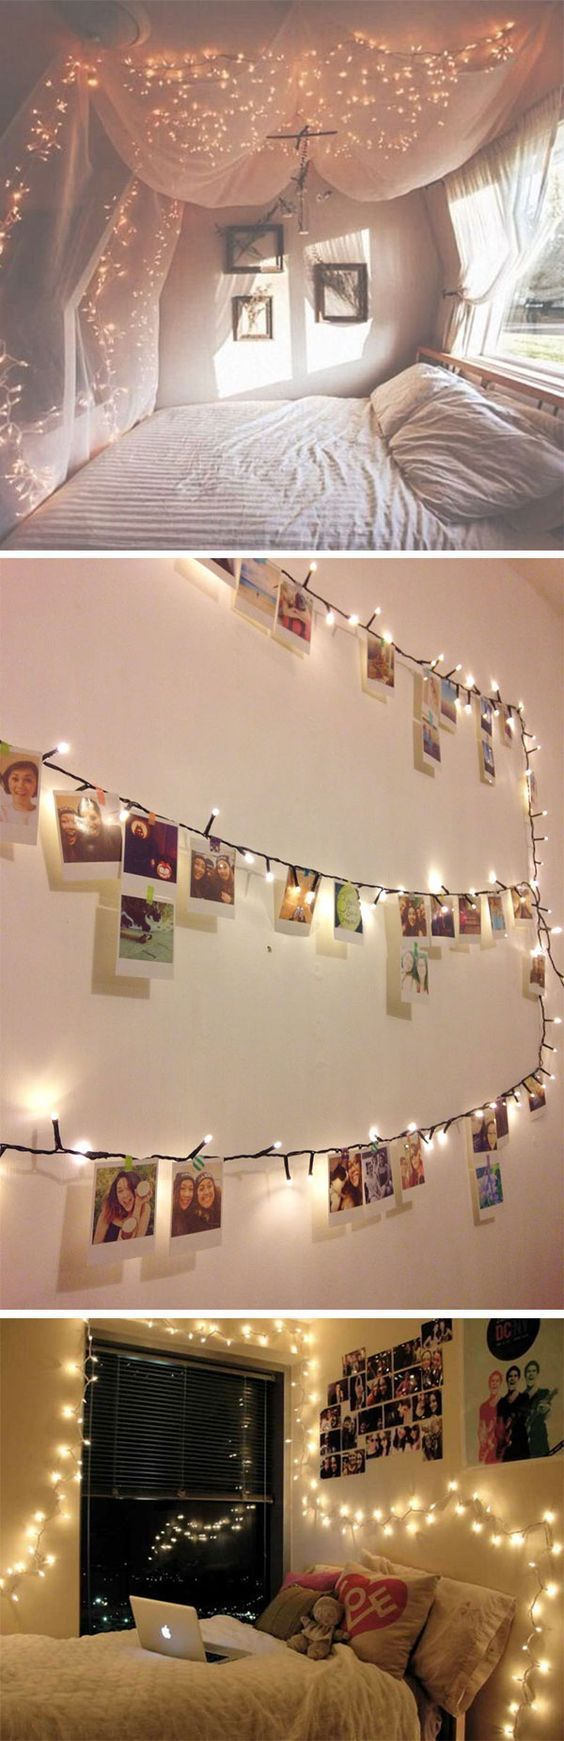 13 ways to use fairy lights to make your home look magical. Best 25  Home decor items ideas on Pinterest   House decoration